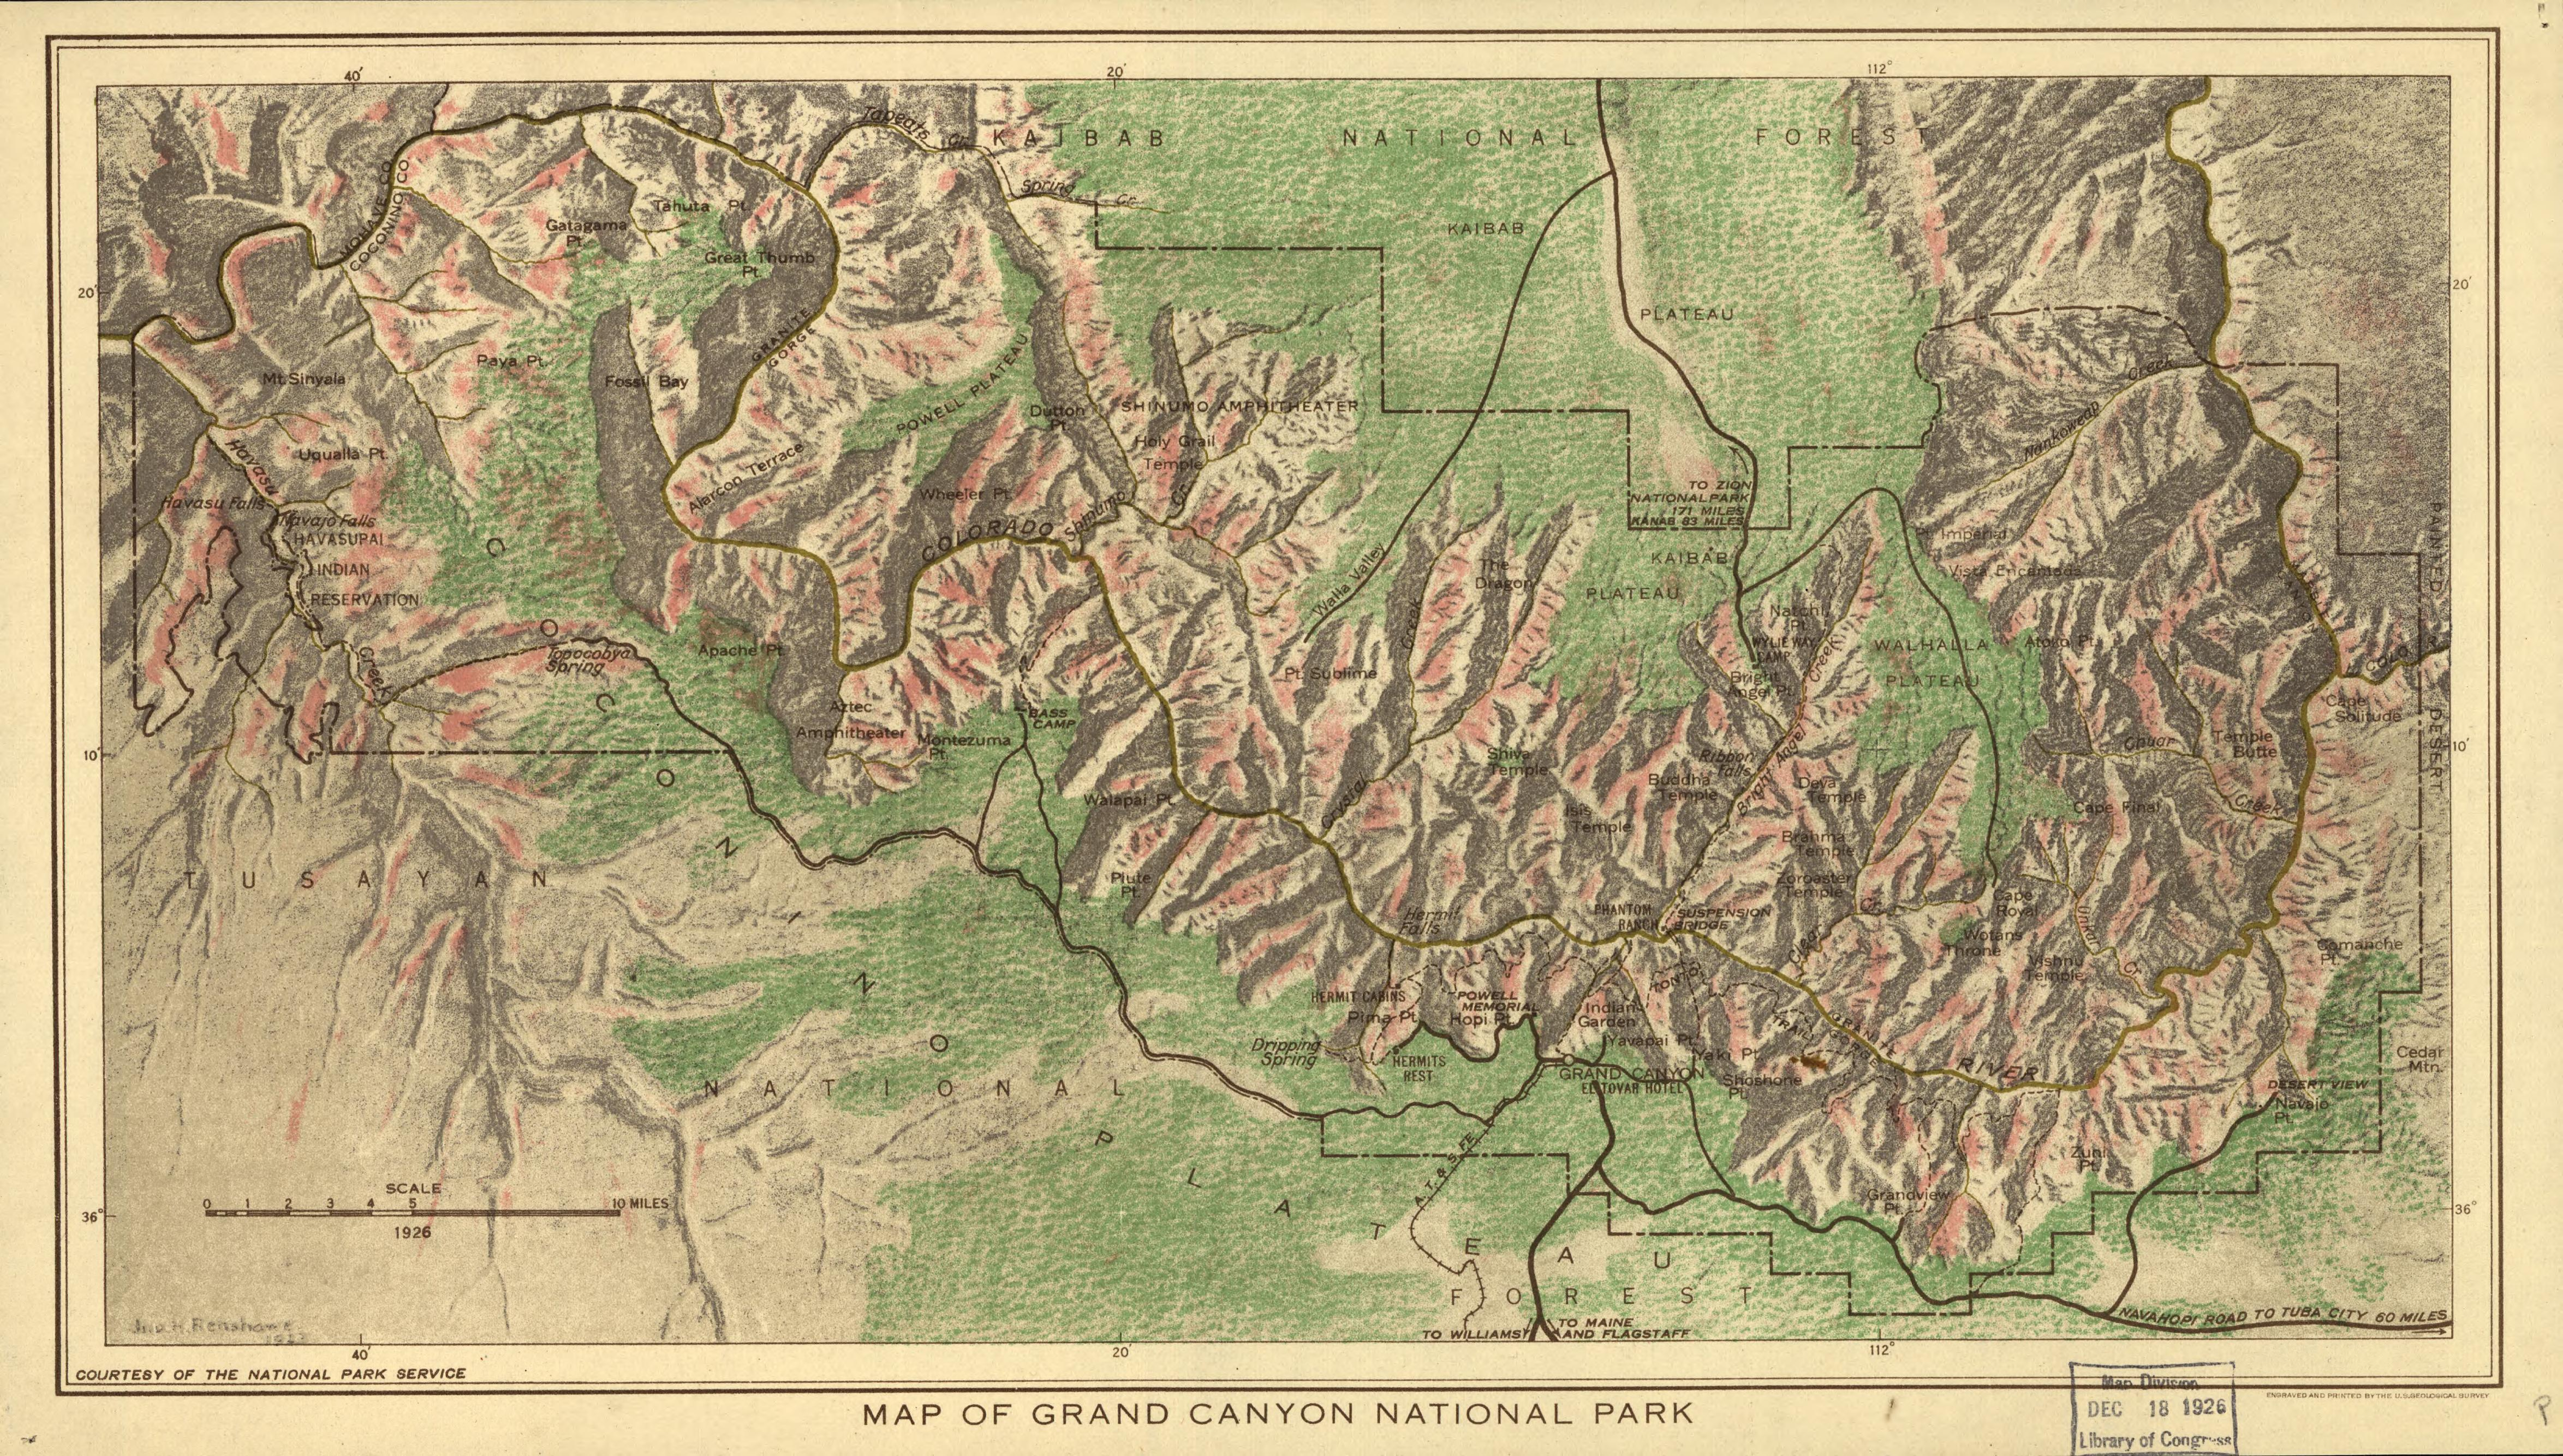 FileMap of the Grand Canyon National Park 1926jpg  Wikimedia